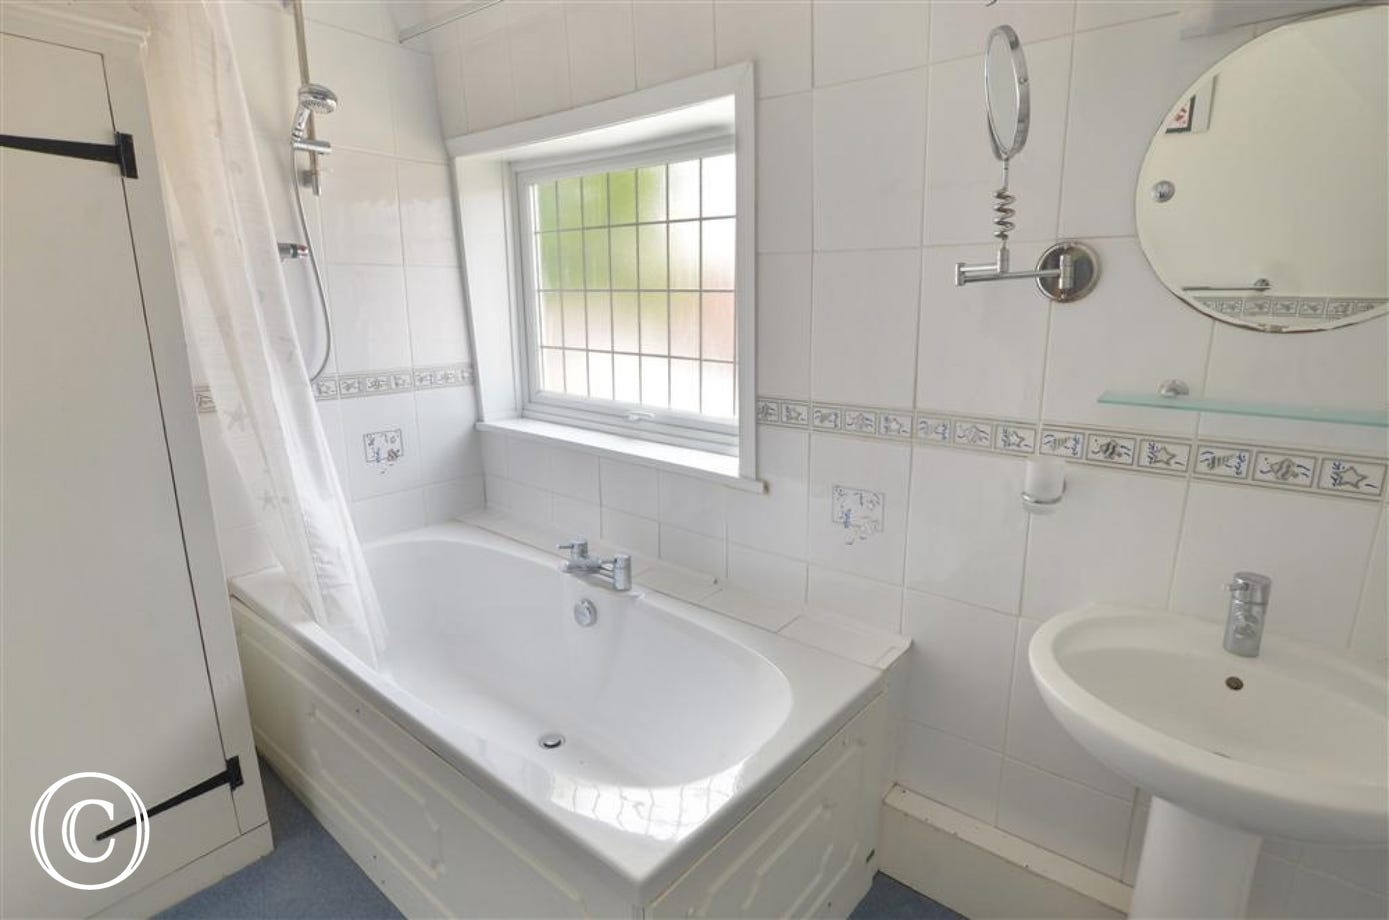 View of ensuite bathroom, with over bath shower and sink with mirror over.